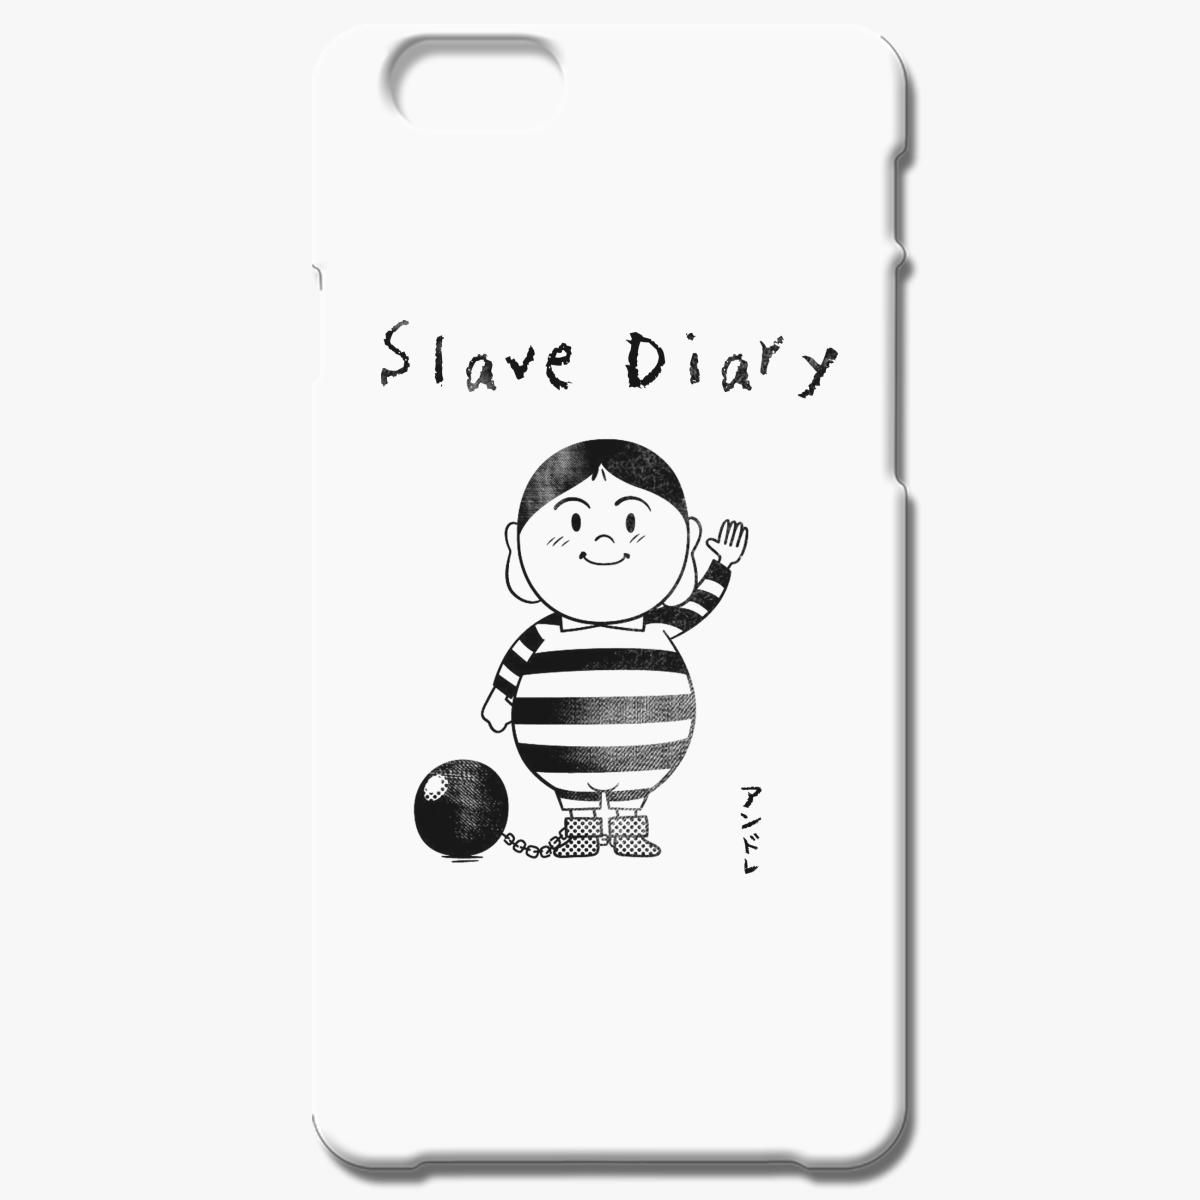 Slave Diary Iphone 6 6s Case